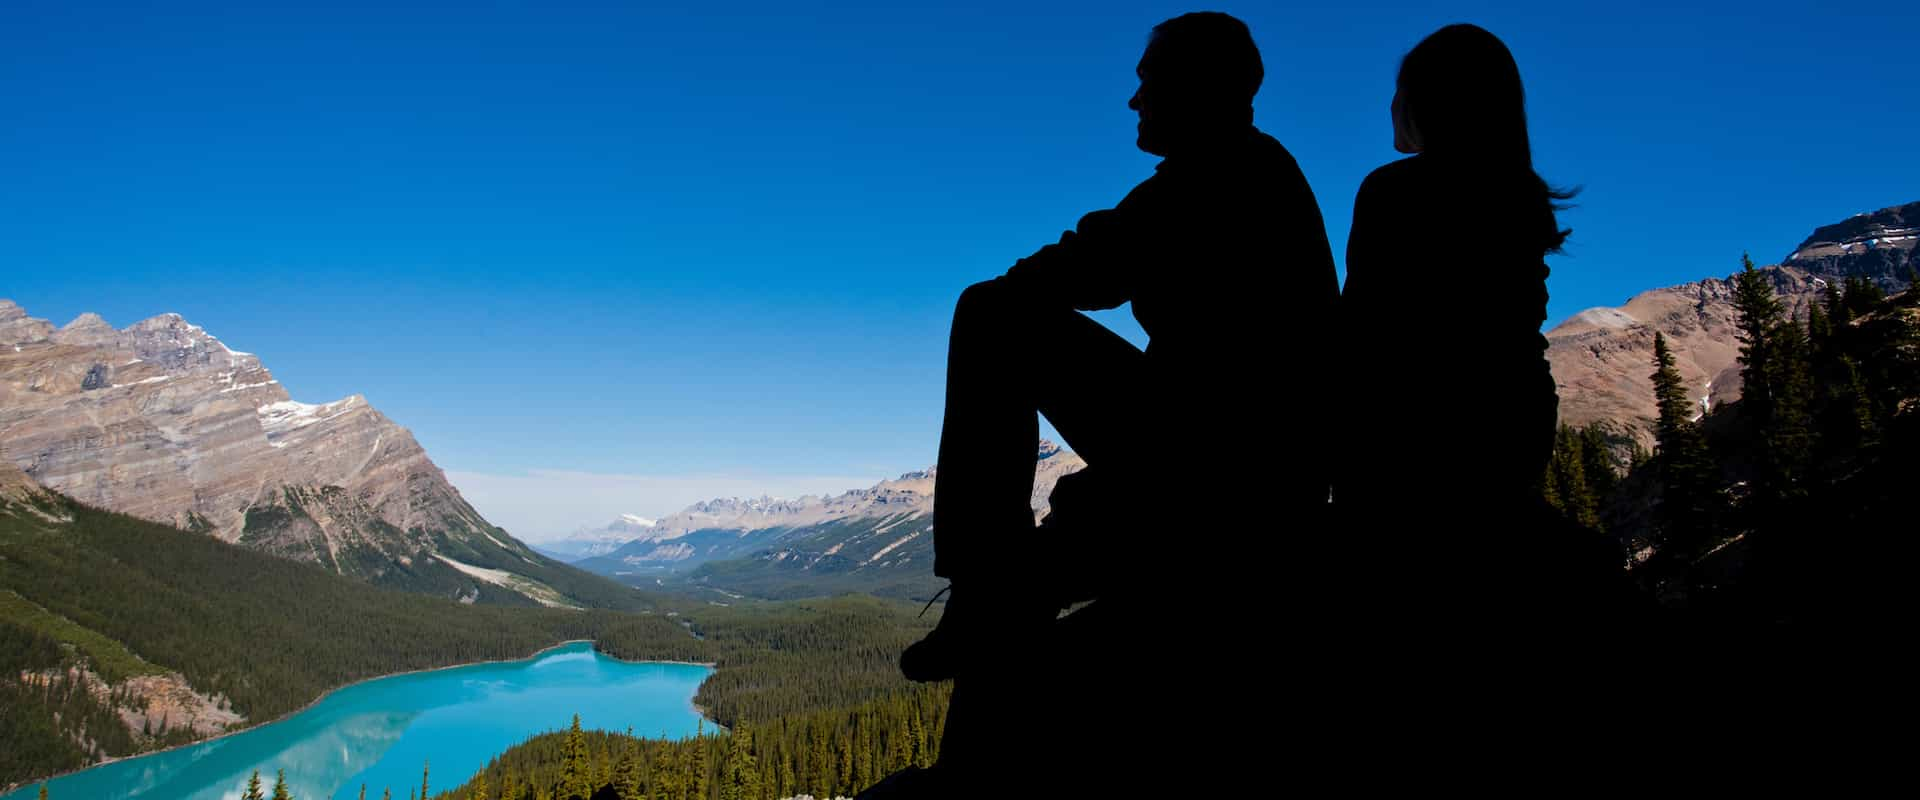 See Peyto Lake on the Columbia Icefields Parkway Tour with Discover Banff Tours